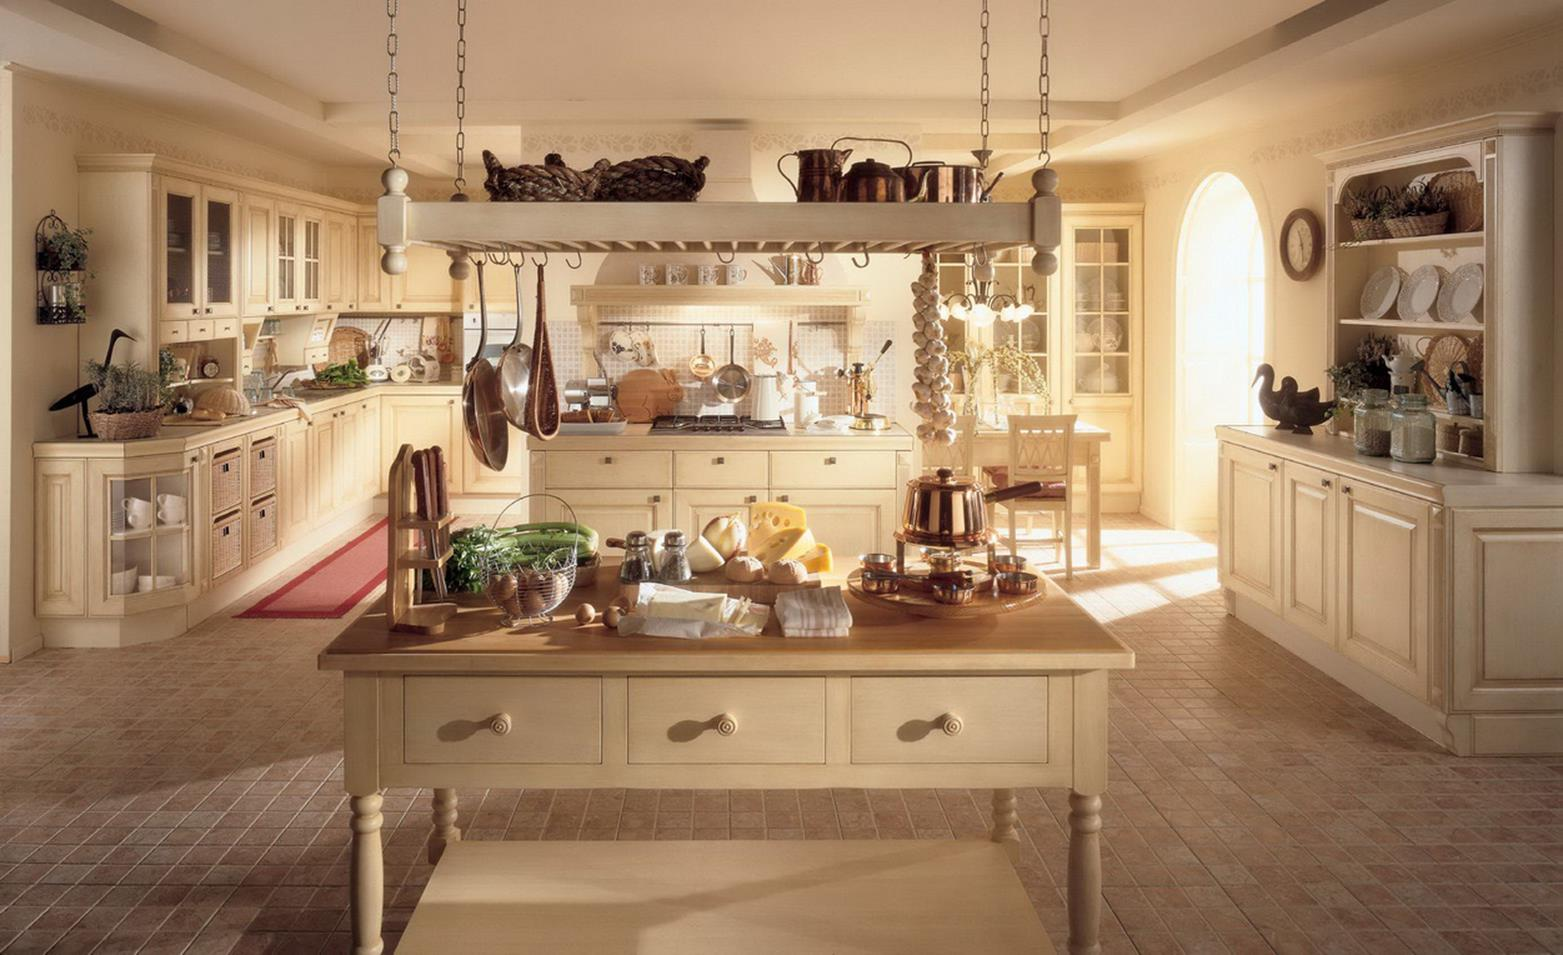 Country Kitchen Accessories and Decor Ideas 38